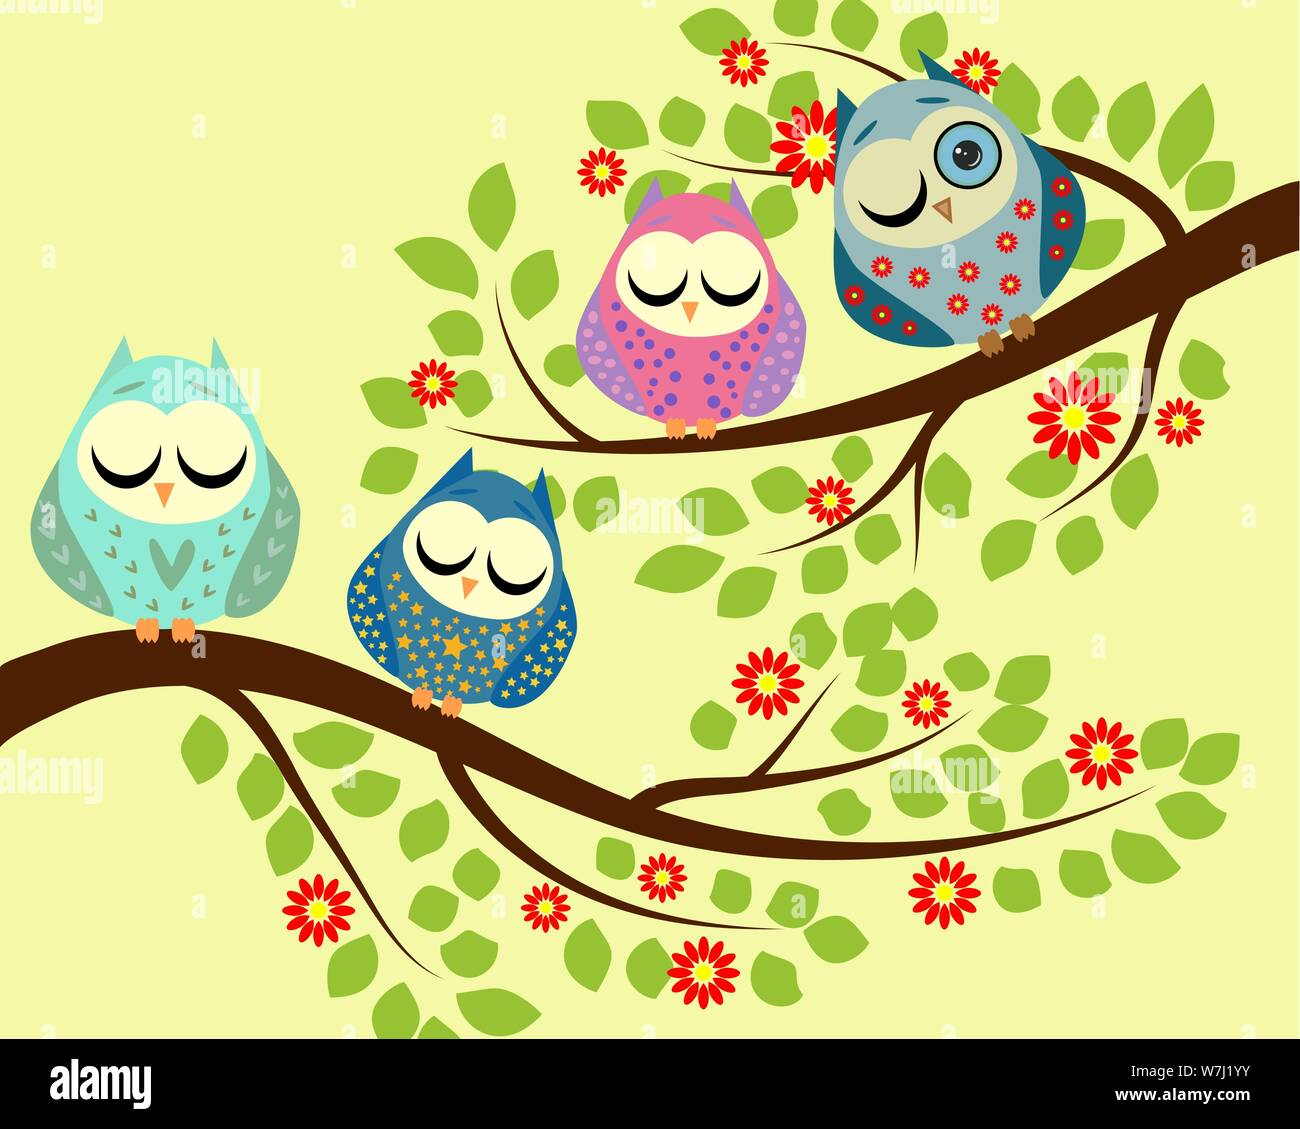 Spy Four Bright Cartoon Owls Sleeping On The Branches Of A Blossoming Tree One Owl With An Open Eye Stock Vector Image Art Alamy Download this vector owl, owl clipart, cute owl, cartoon owl png clipart image with transparent background or psd file for free. https www alamy com spy four bright cartoon owls sleeping on the branches of a blossoming tree one owl with an open eye image262854815 html